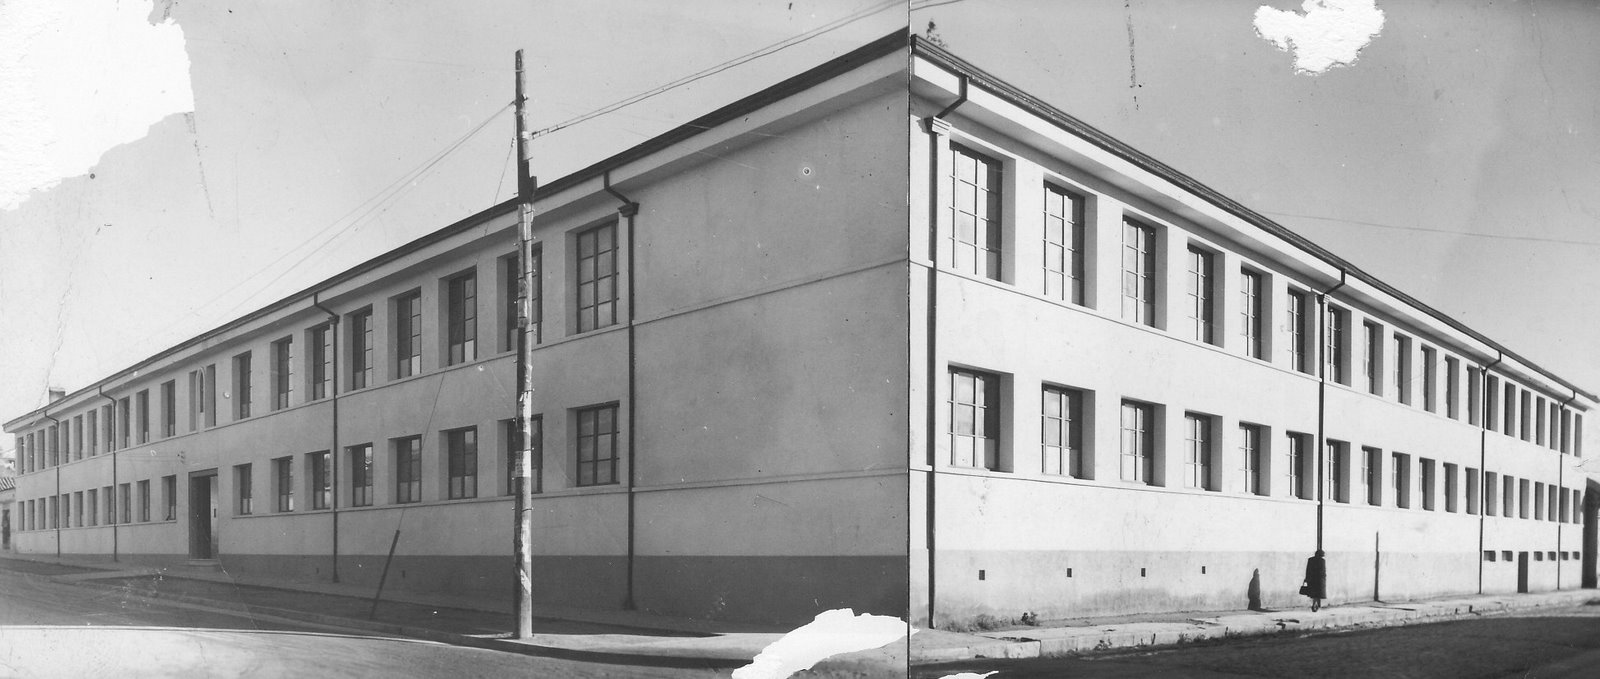 Enterreno - Fotos históricas de chile - fotos antiguas de Chile - Colegio de Cauquenes en 1950